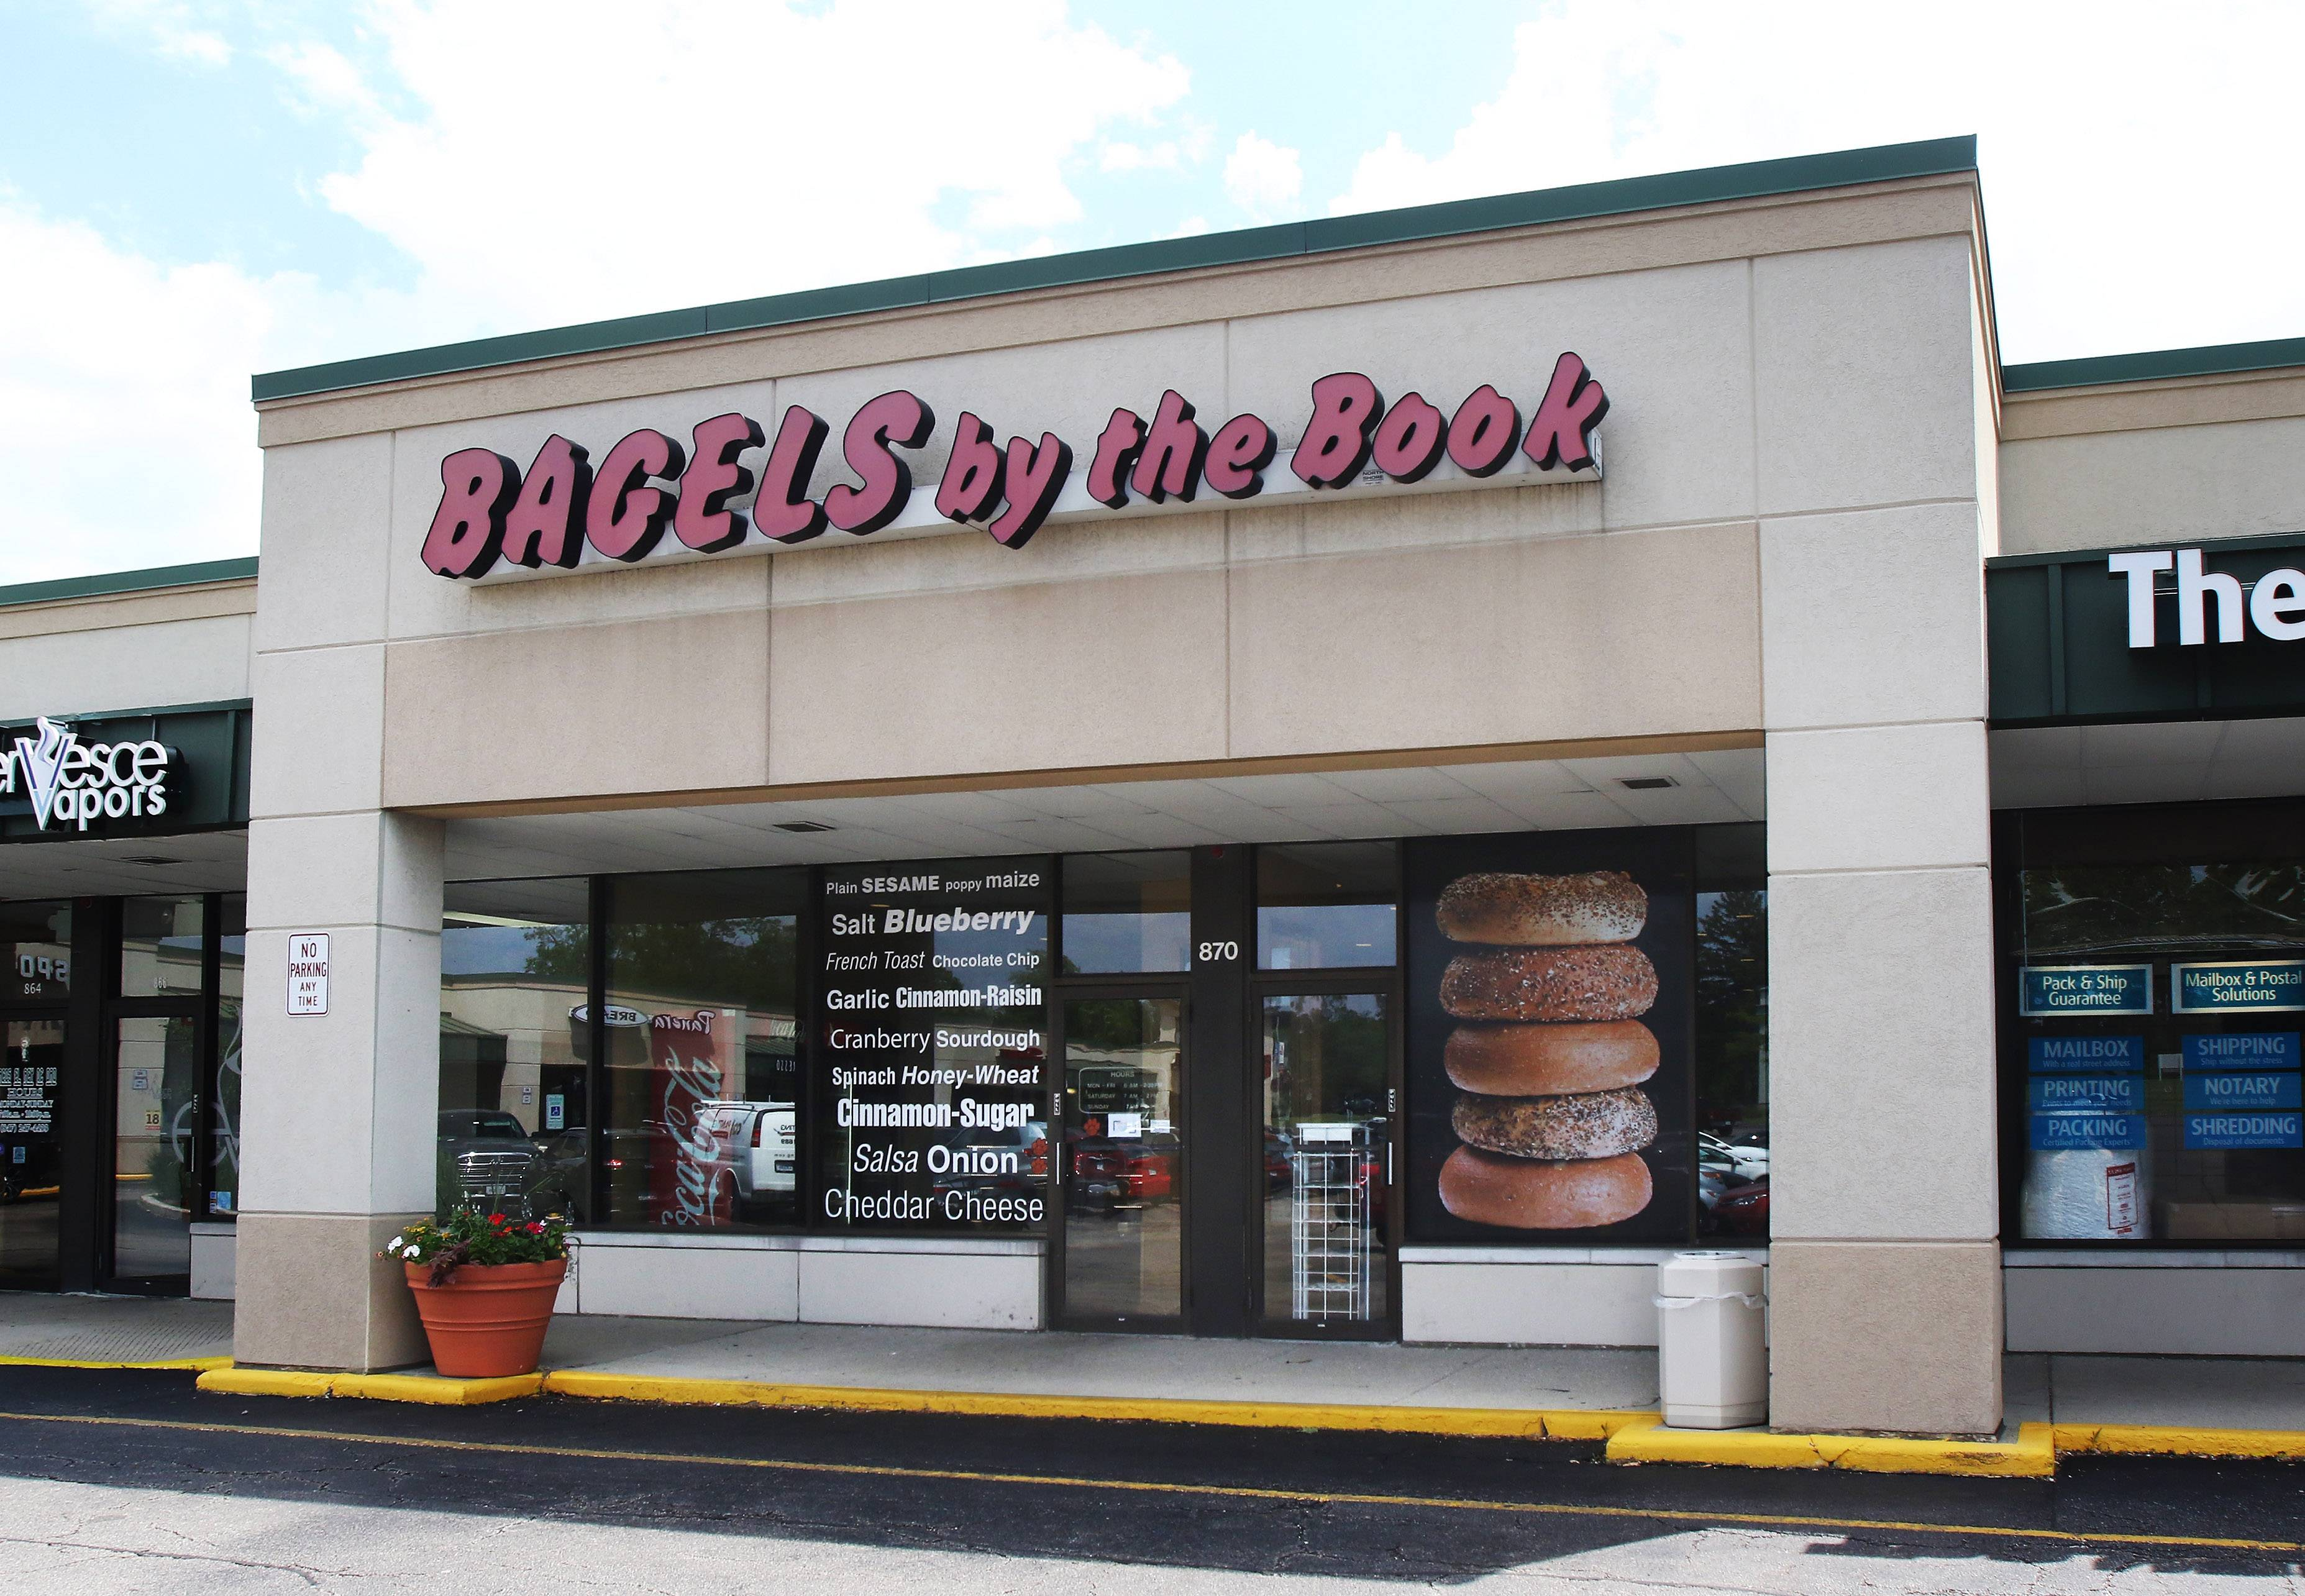 Bagels by the Book, which opened in Libertyville in 1994, is closing June 24.